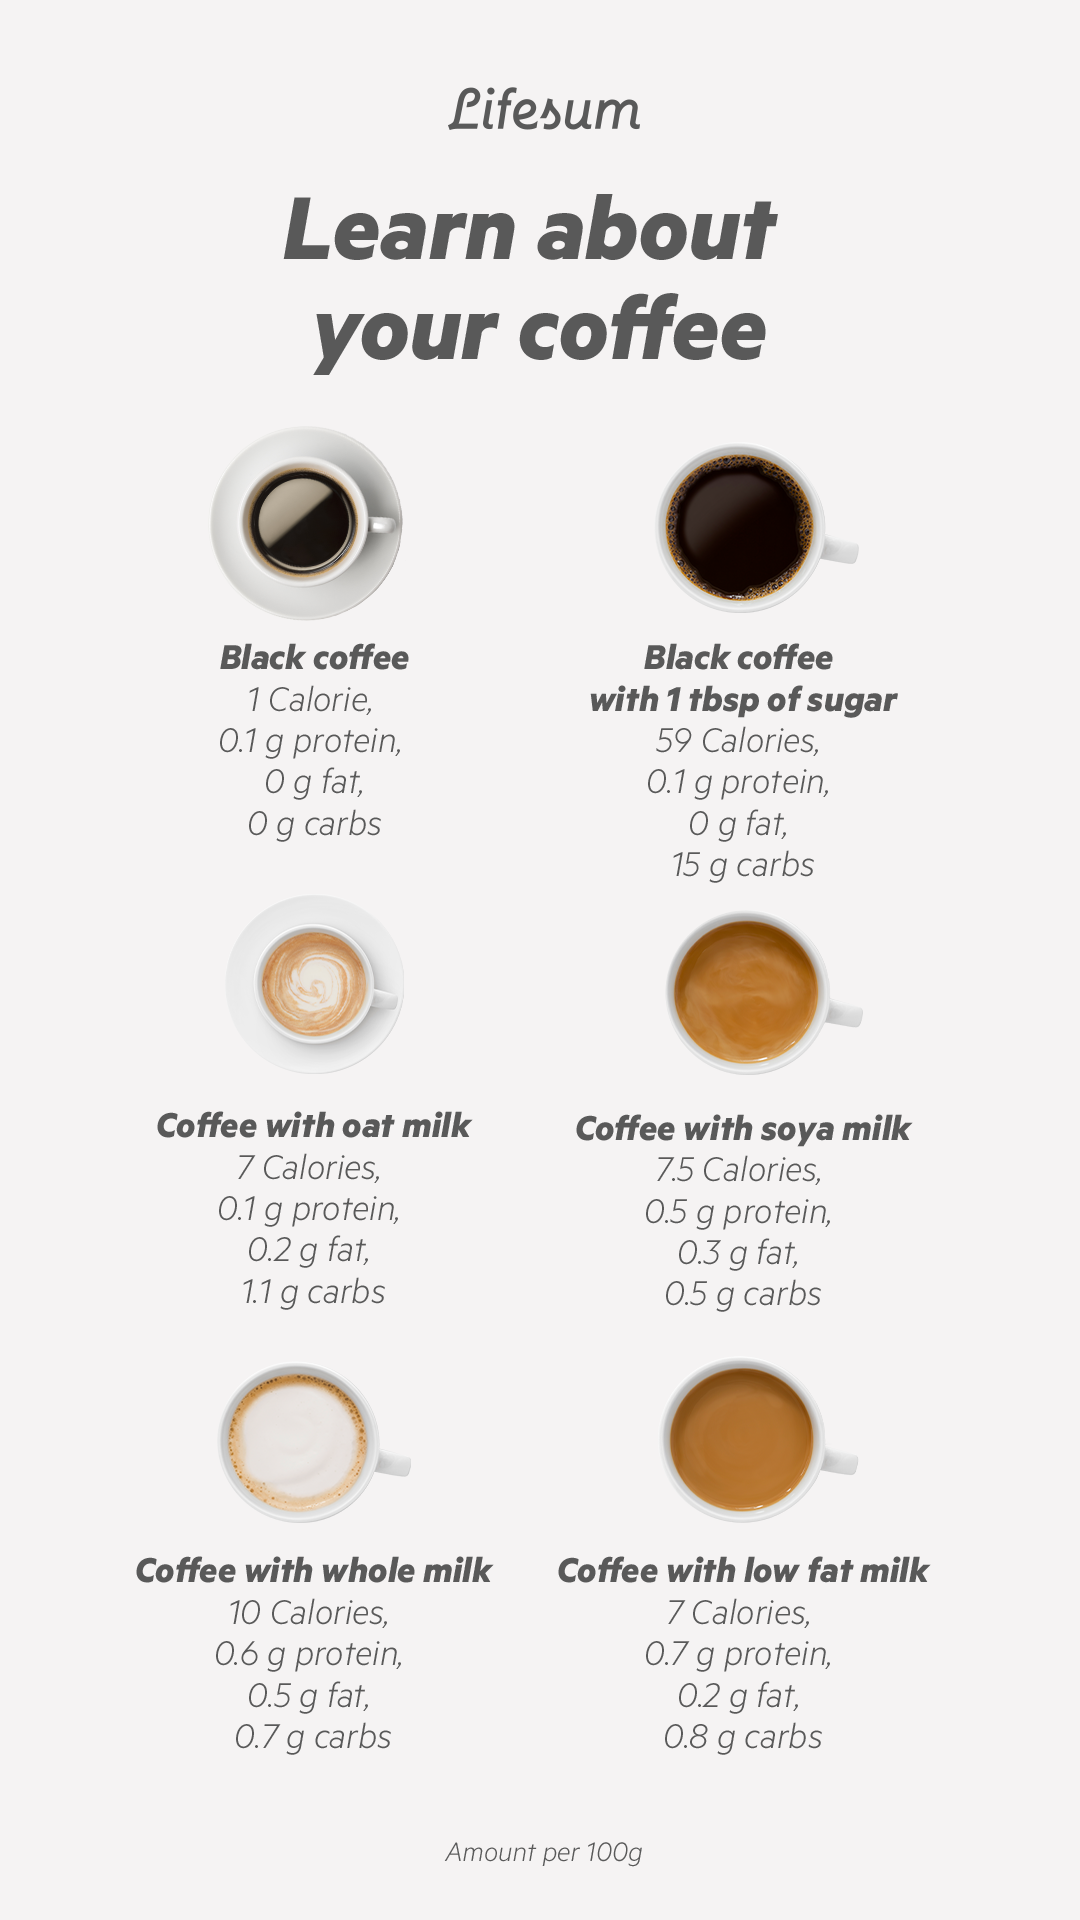 Learn about your coffee